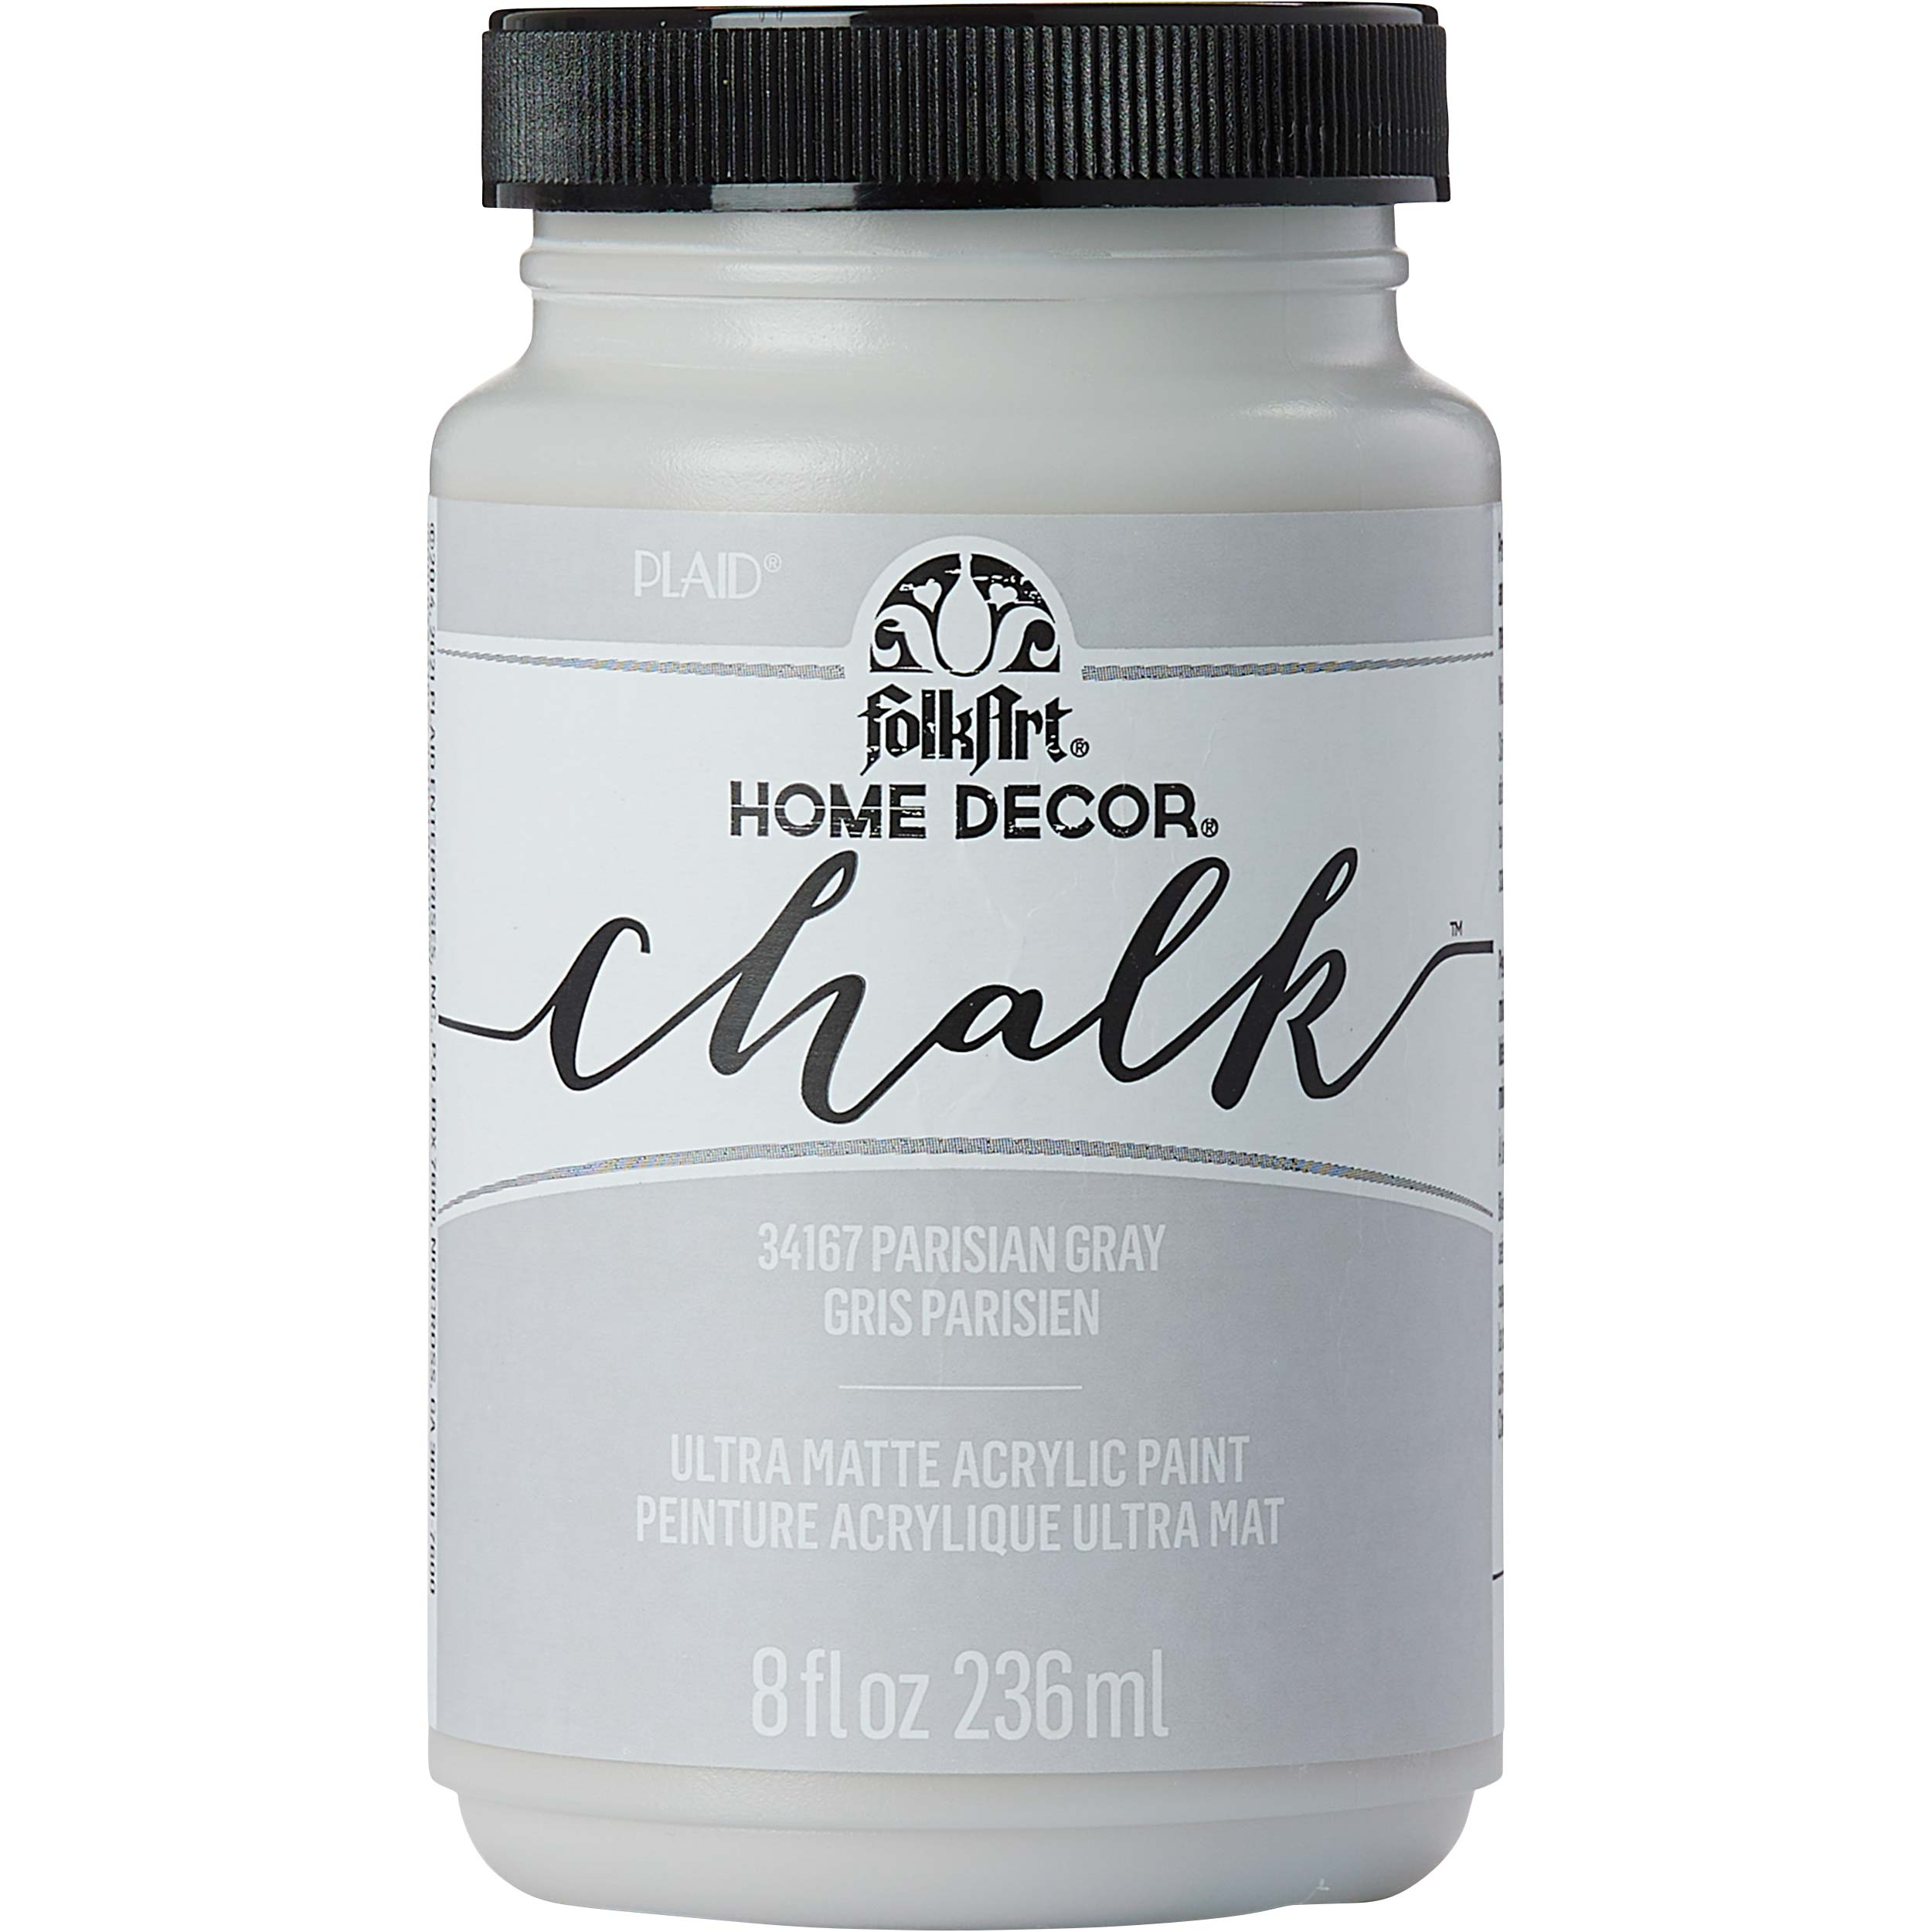 FolkArt ® Home Decor™ Chalk - Parisian Grey, 8 oz. - 34167